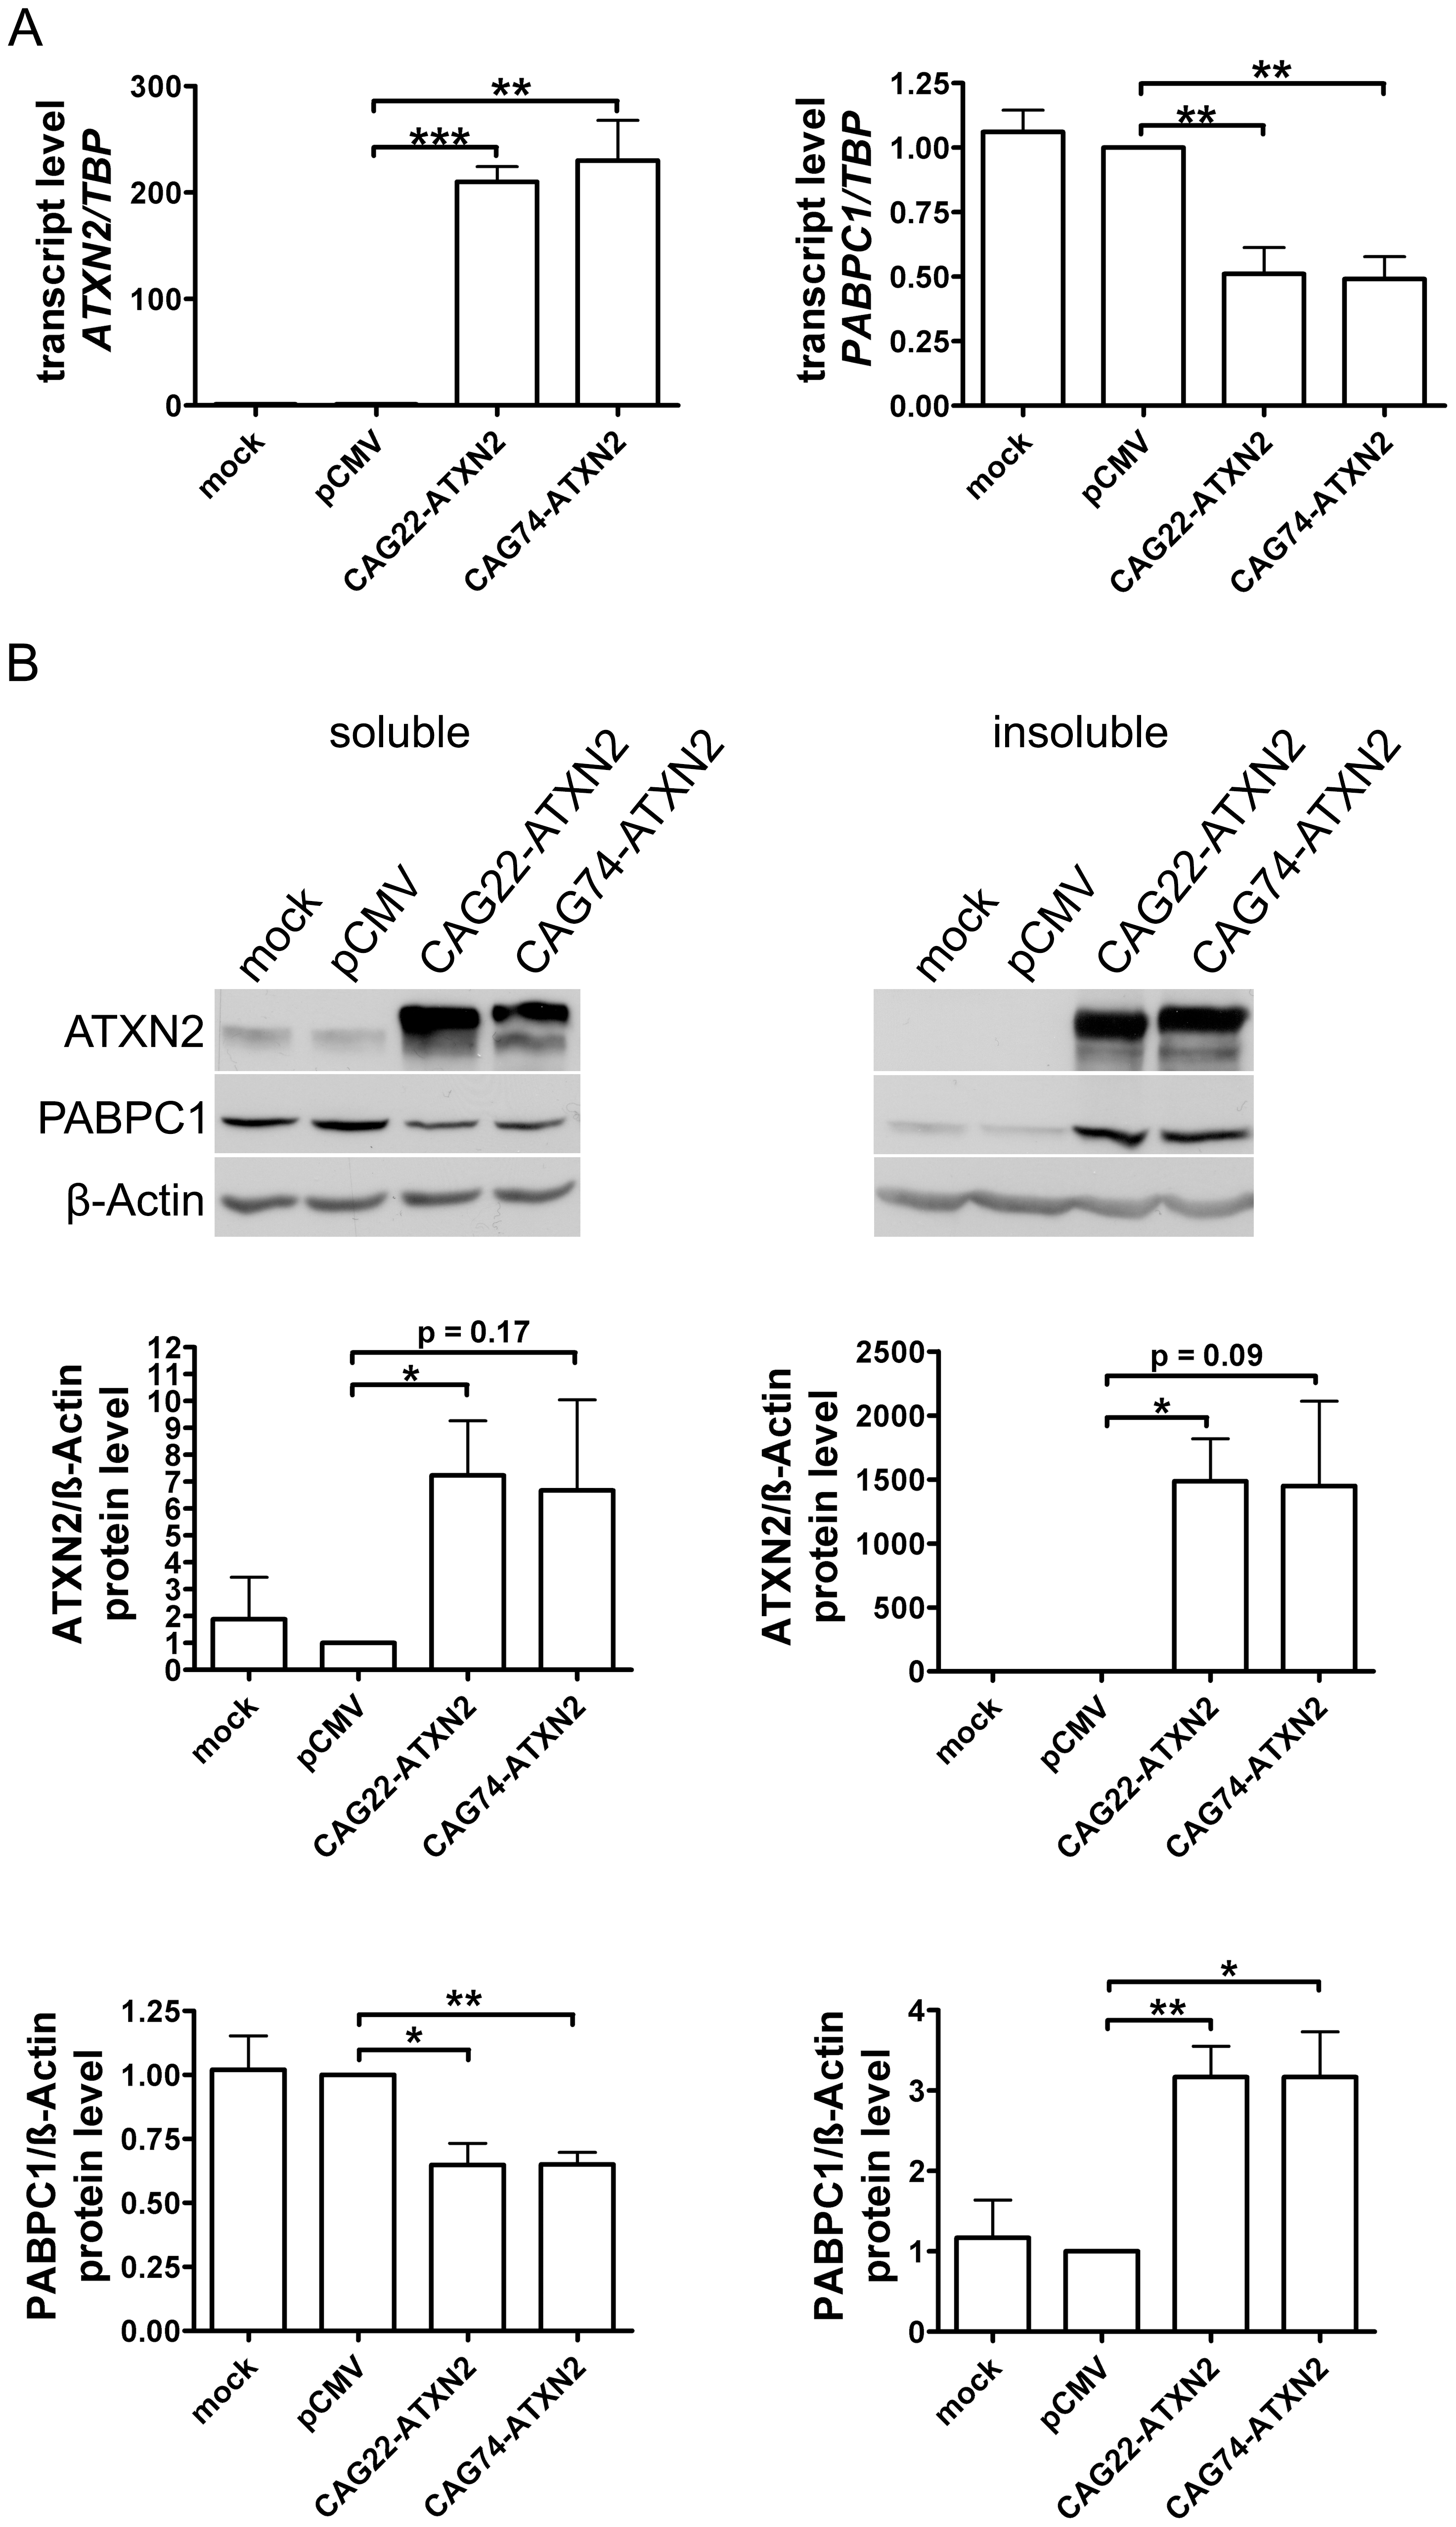 Normal and expanded insoluble ATXN2 drives PABPC1 into insolubility.